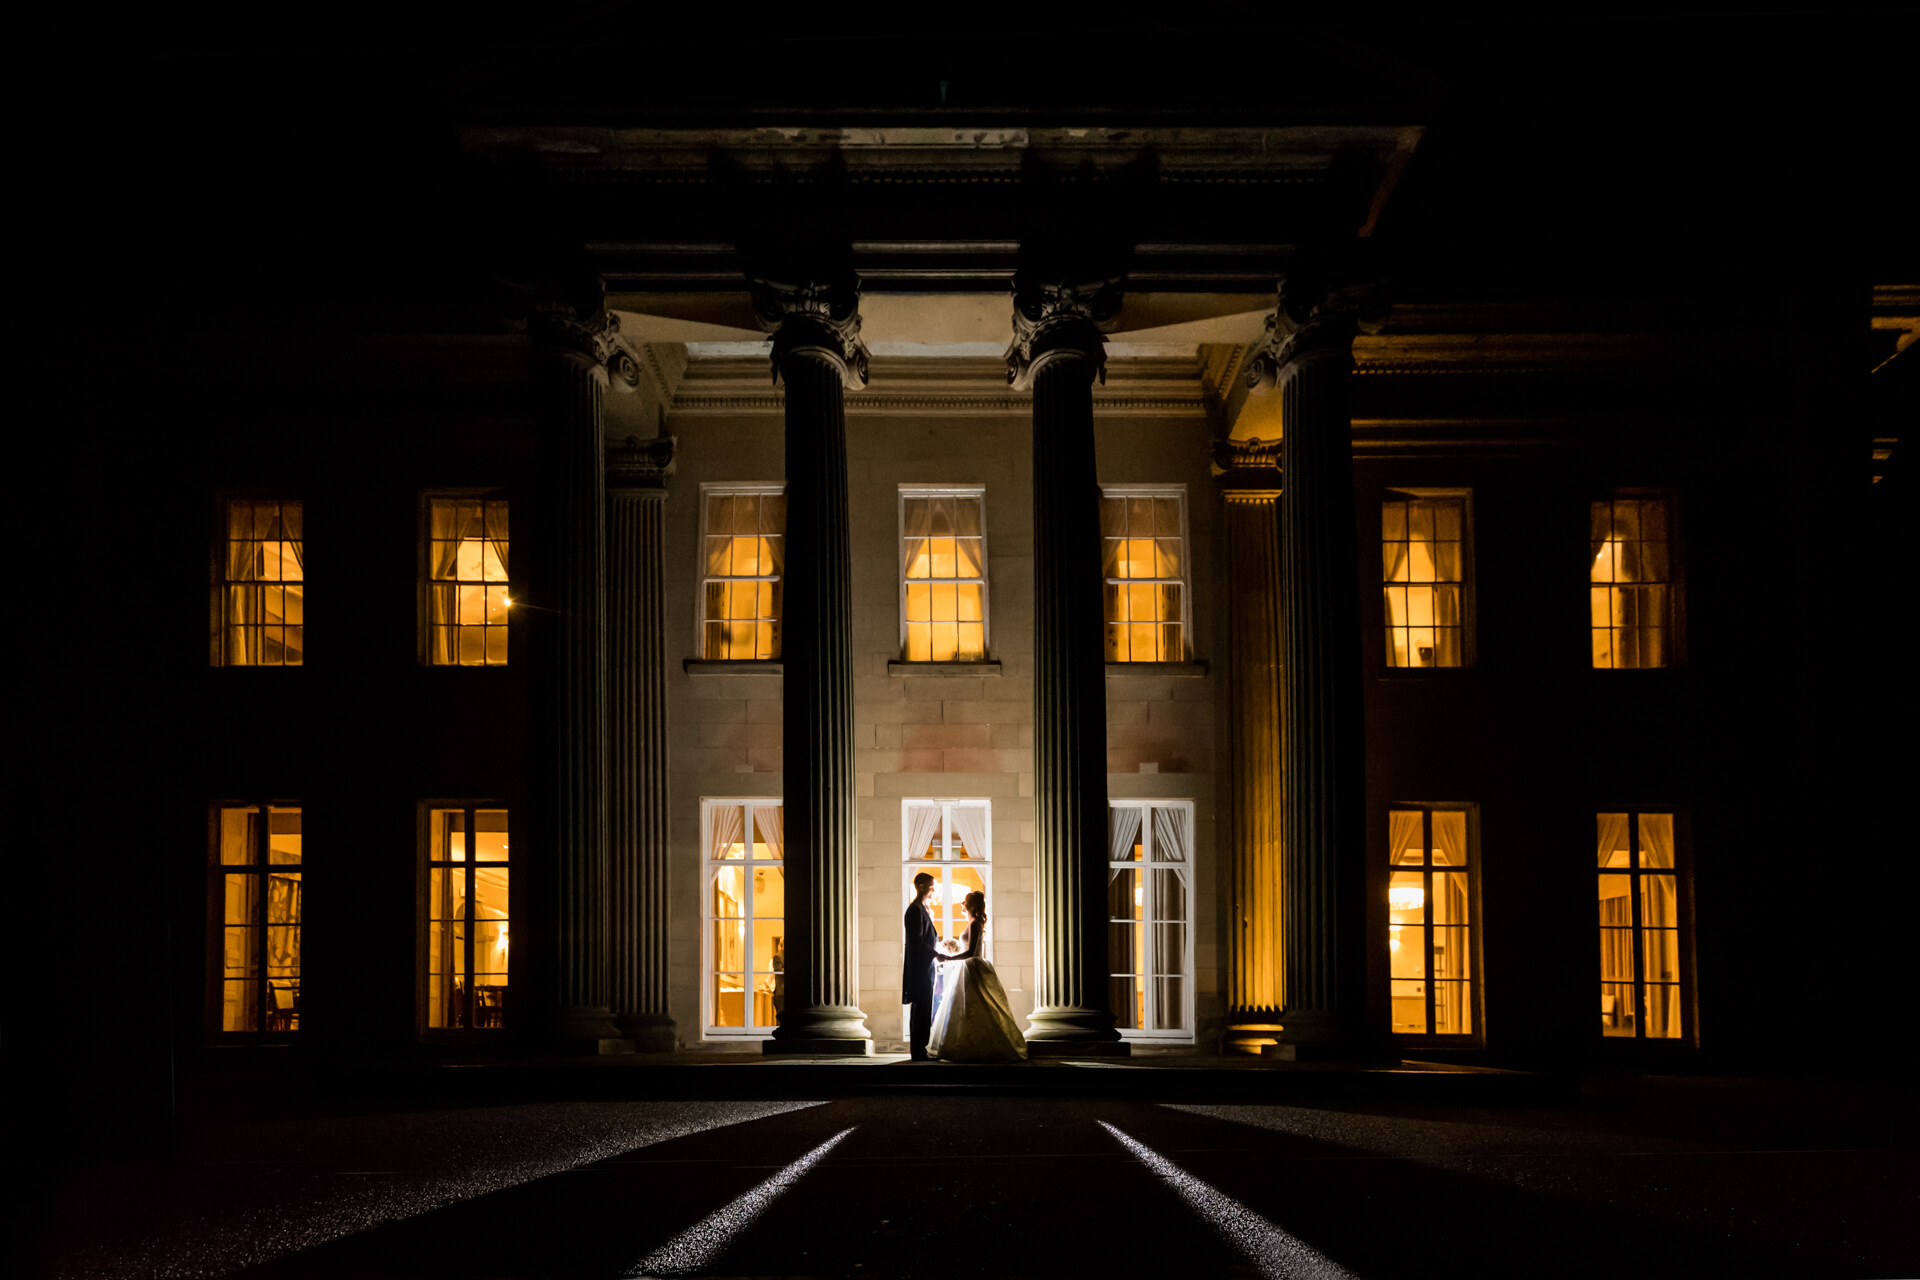 nighttime portrait of the bride and groom holding hands in front of a wedding mansion